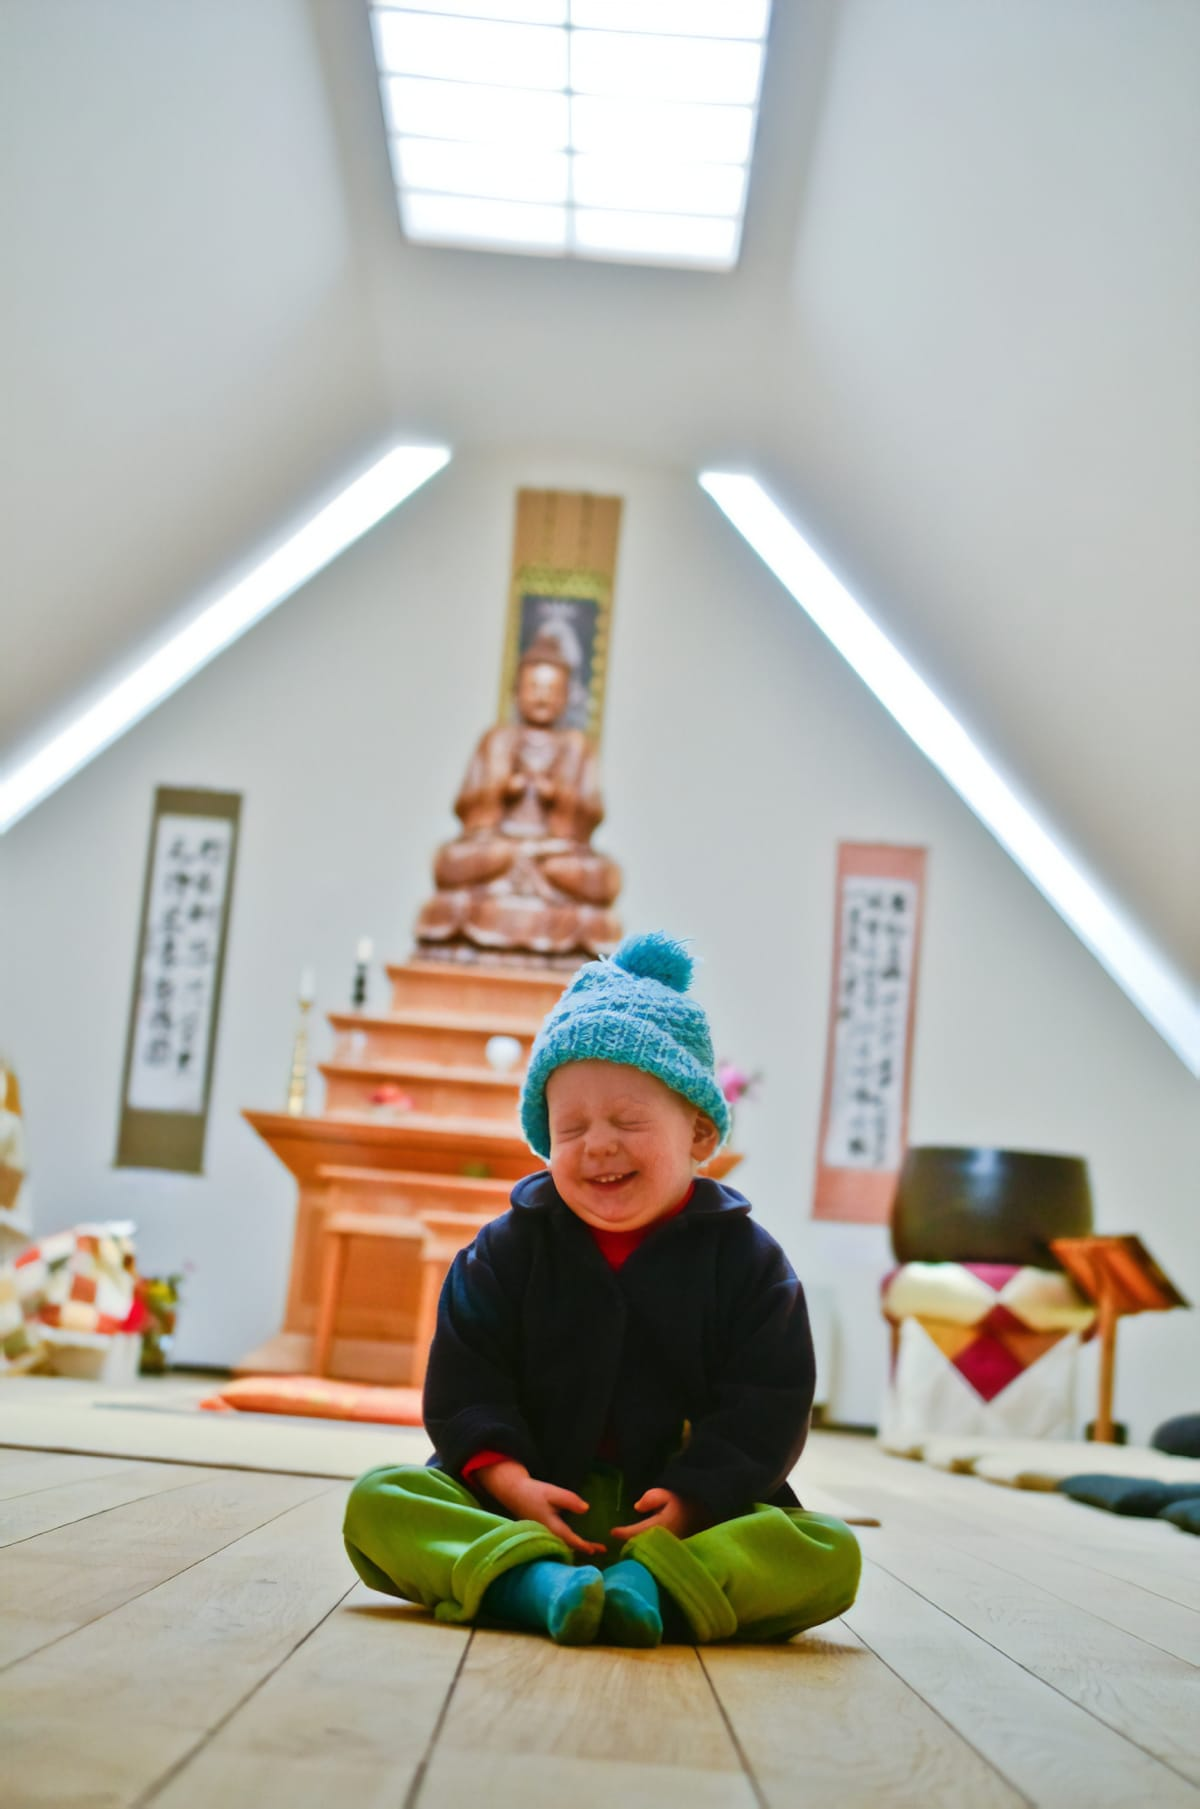 Little boy laughing in shrine room.